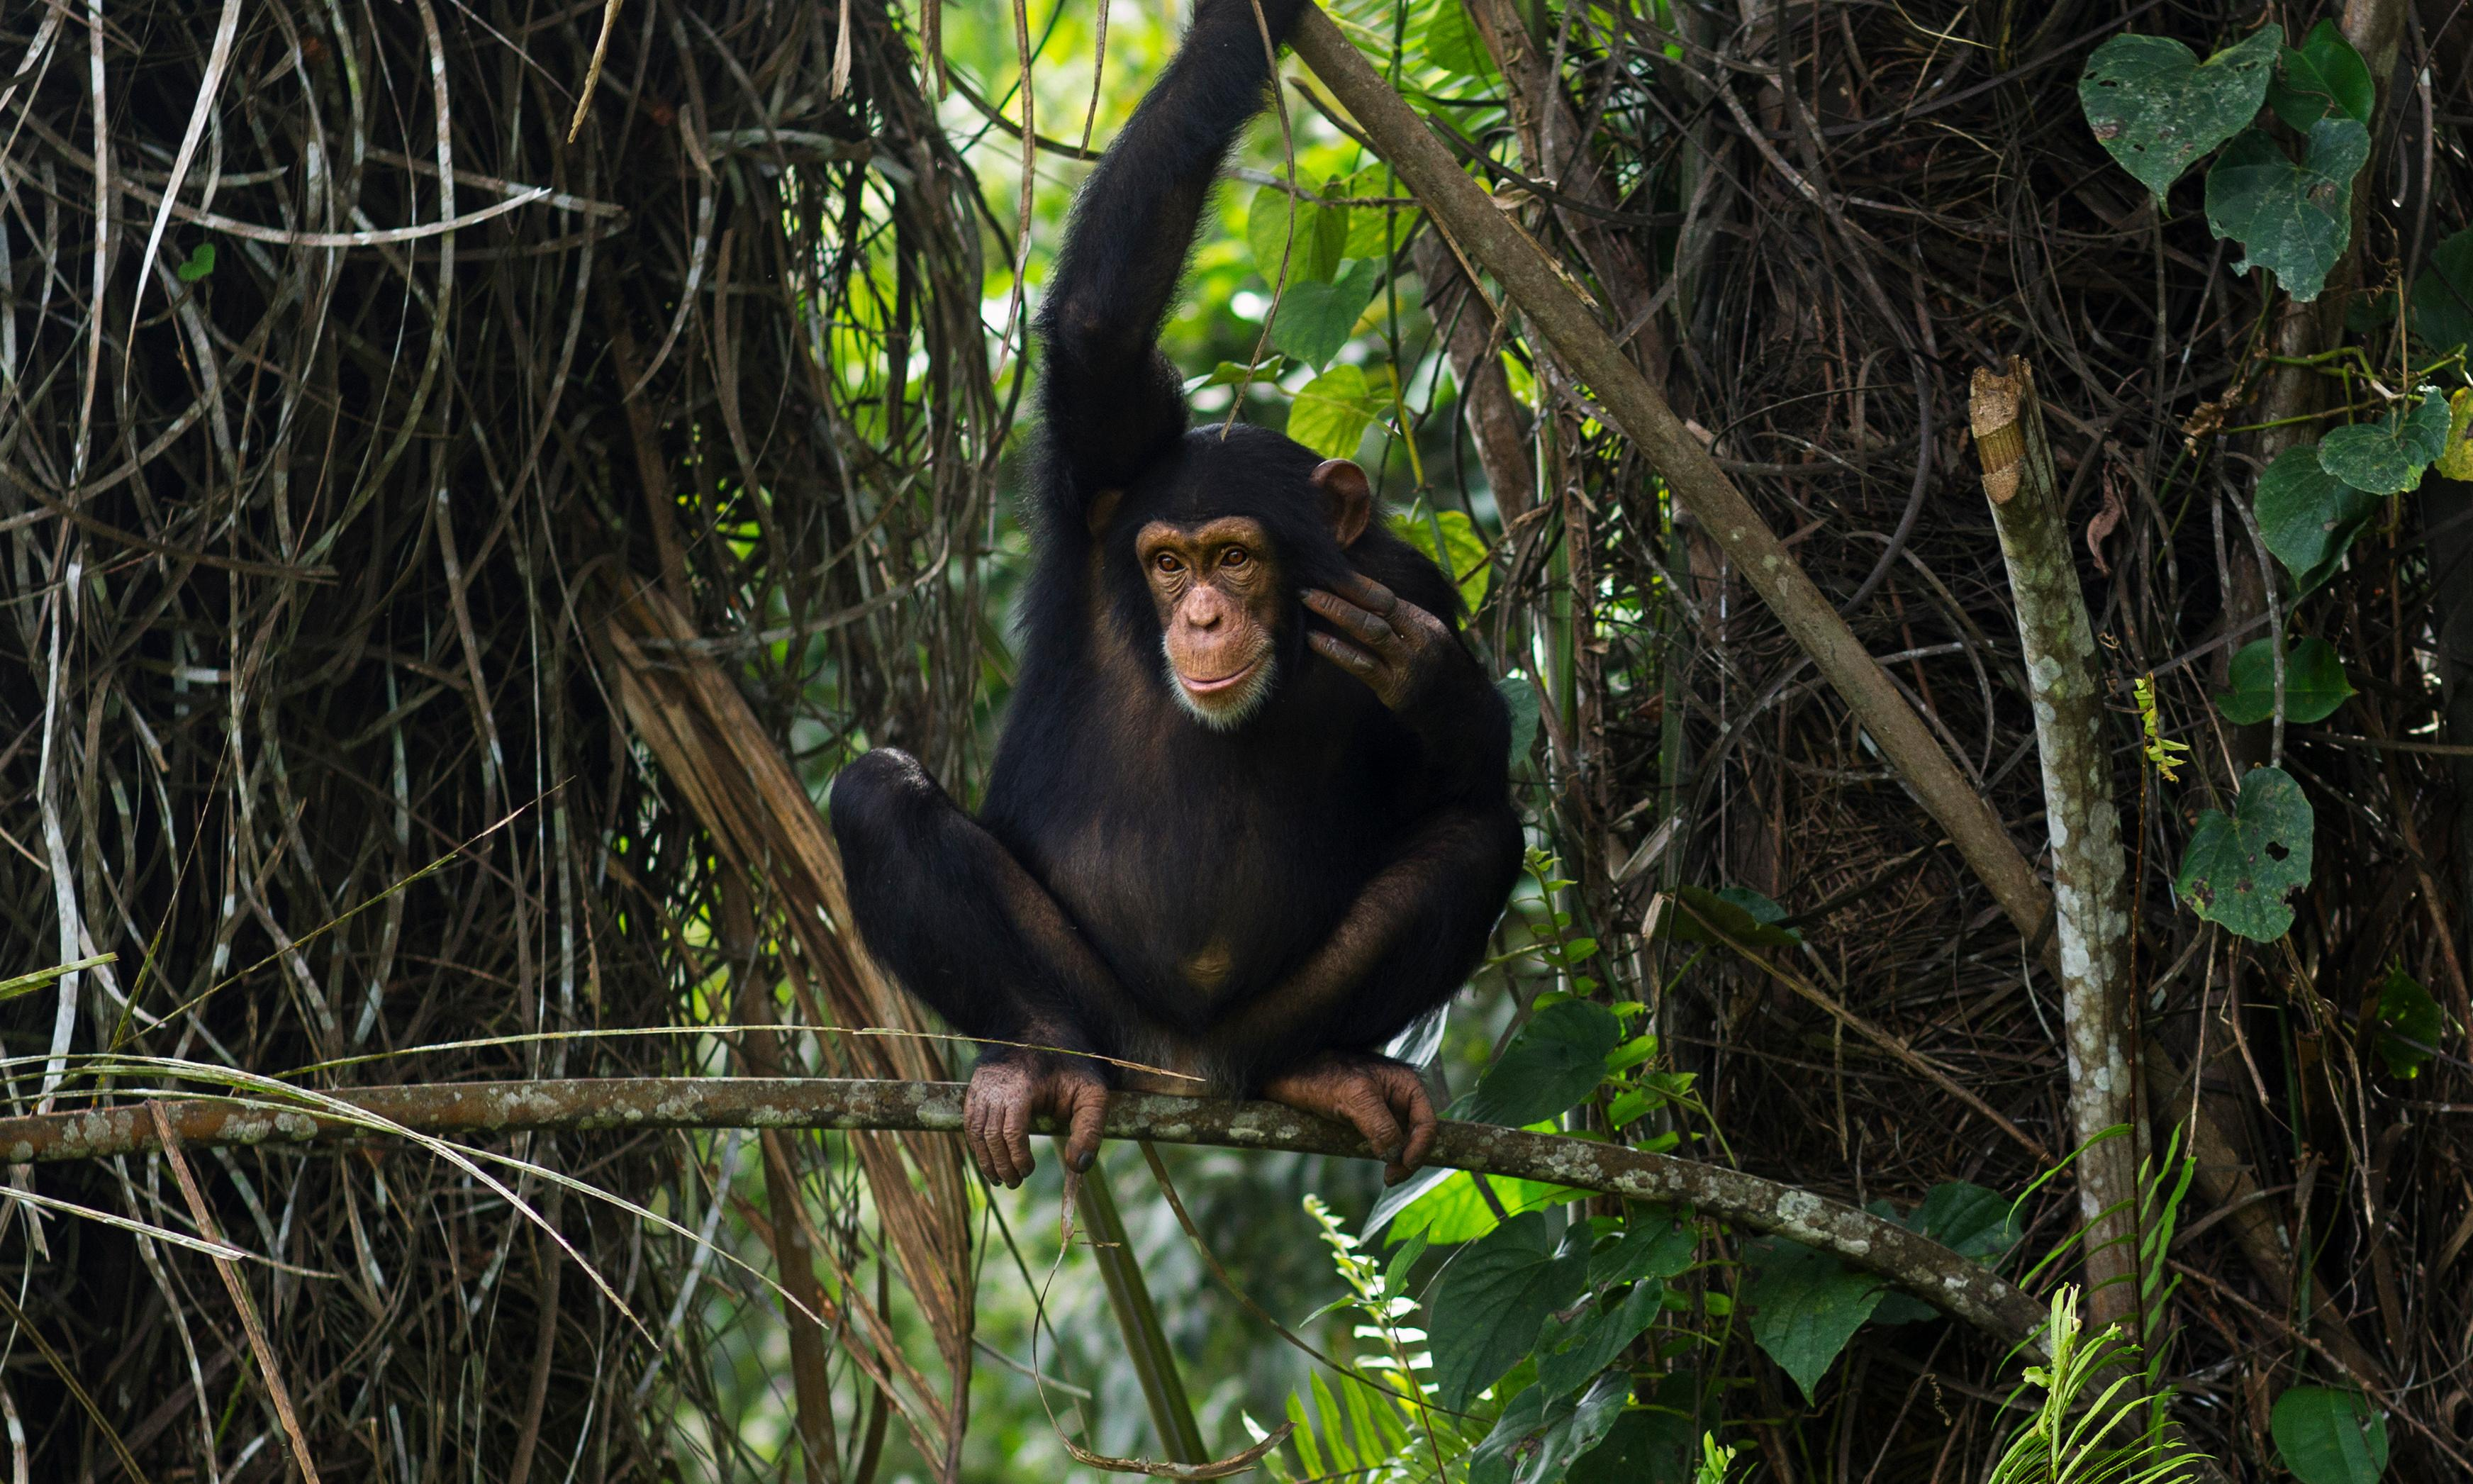 Chimpanzees 'talk' just like humans. It's time to realise how similar we are